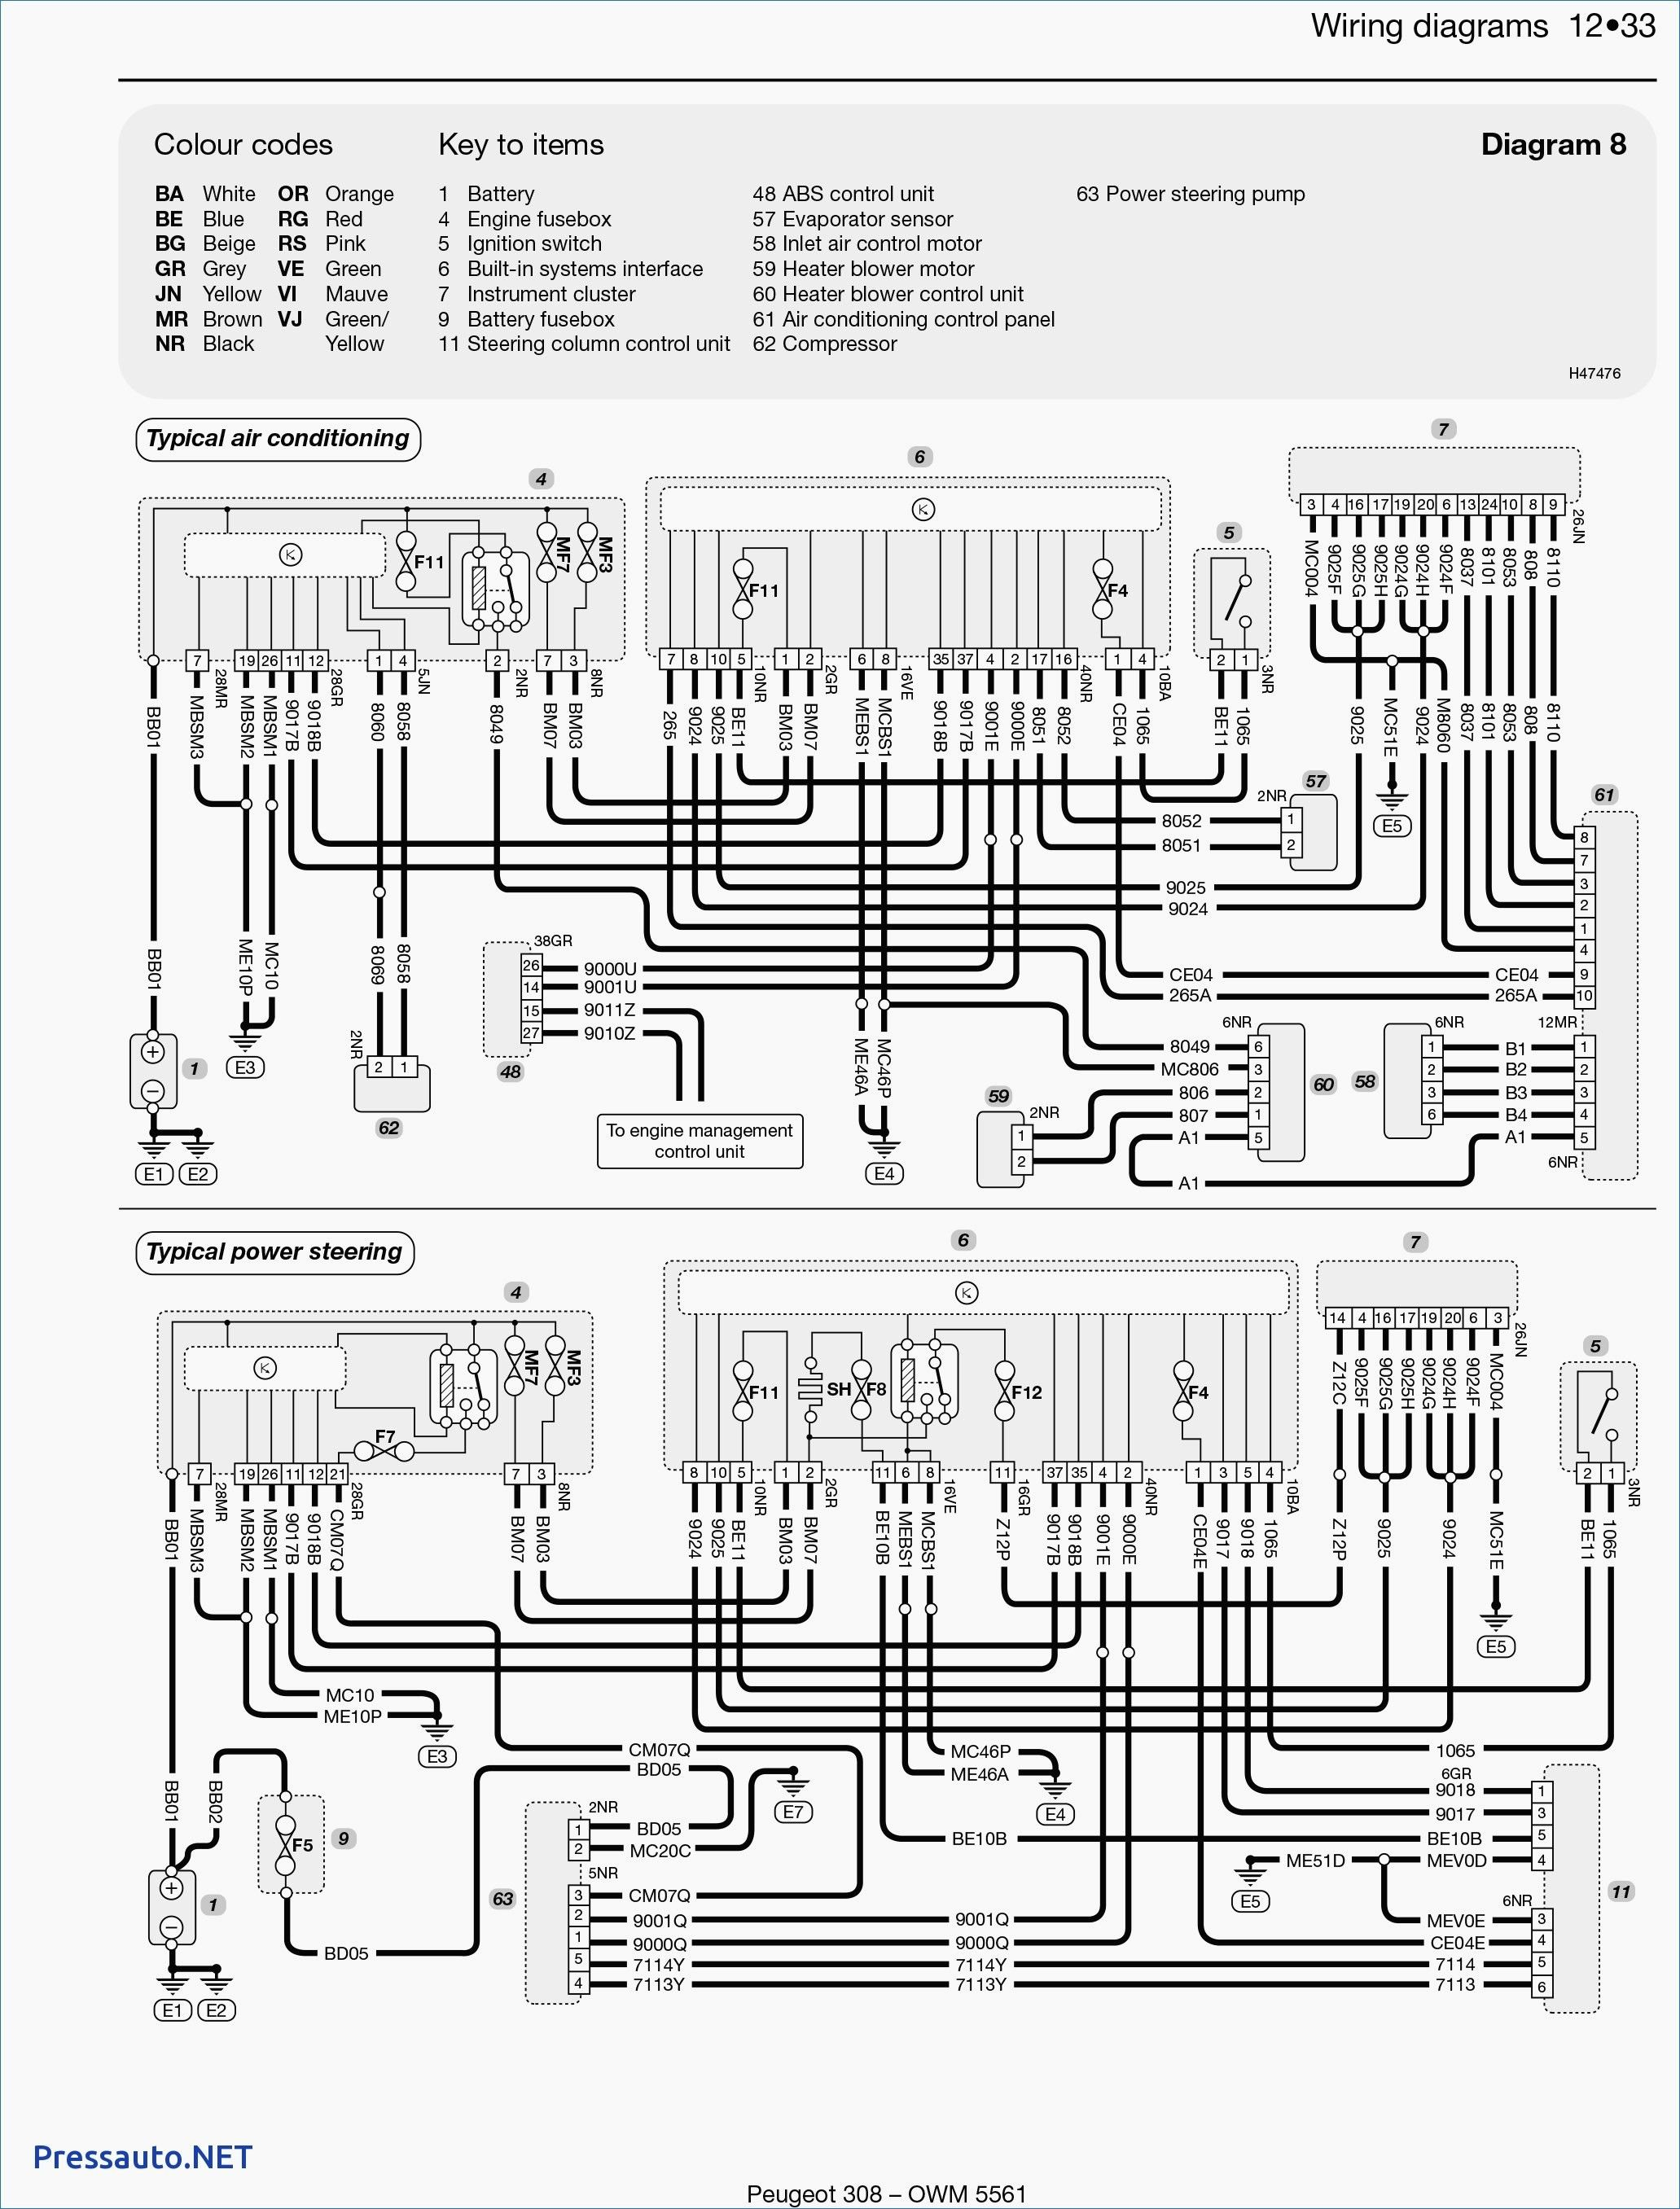 small resolution of wiring diagram for peugeot 206 stereo best of fortable in